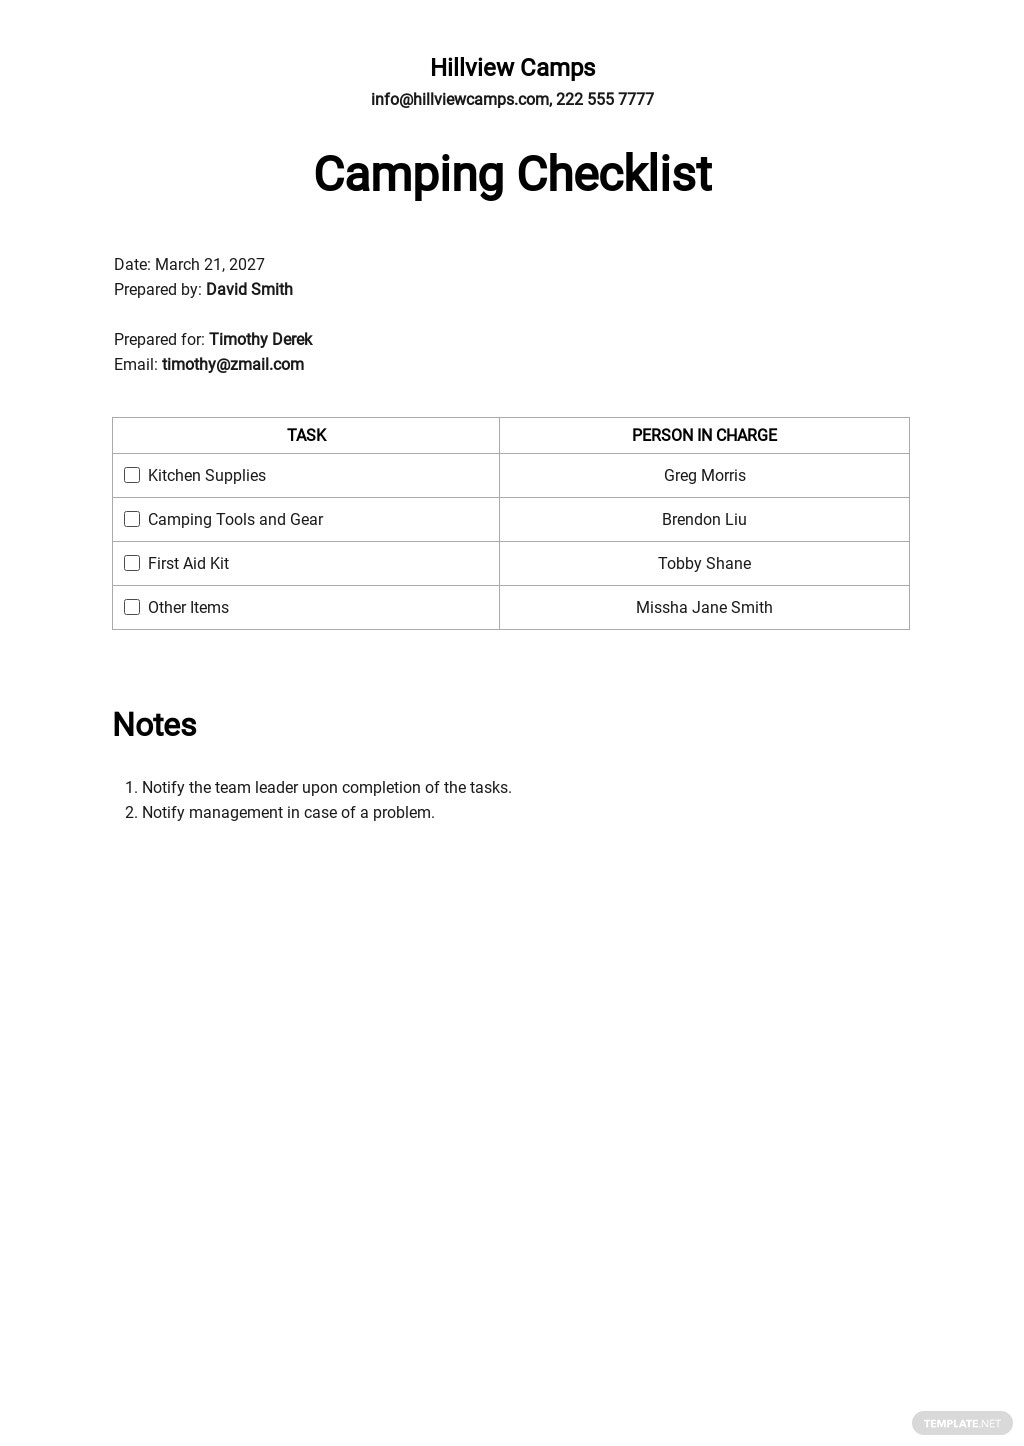 Free Camping Checklist Template.jpe